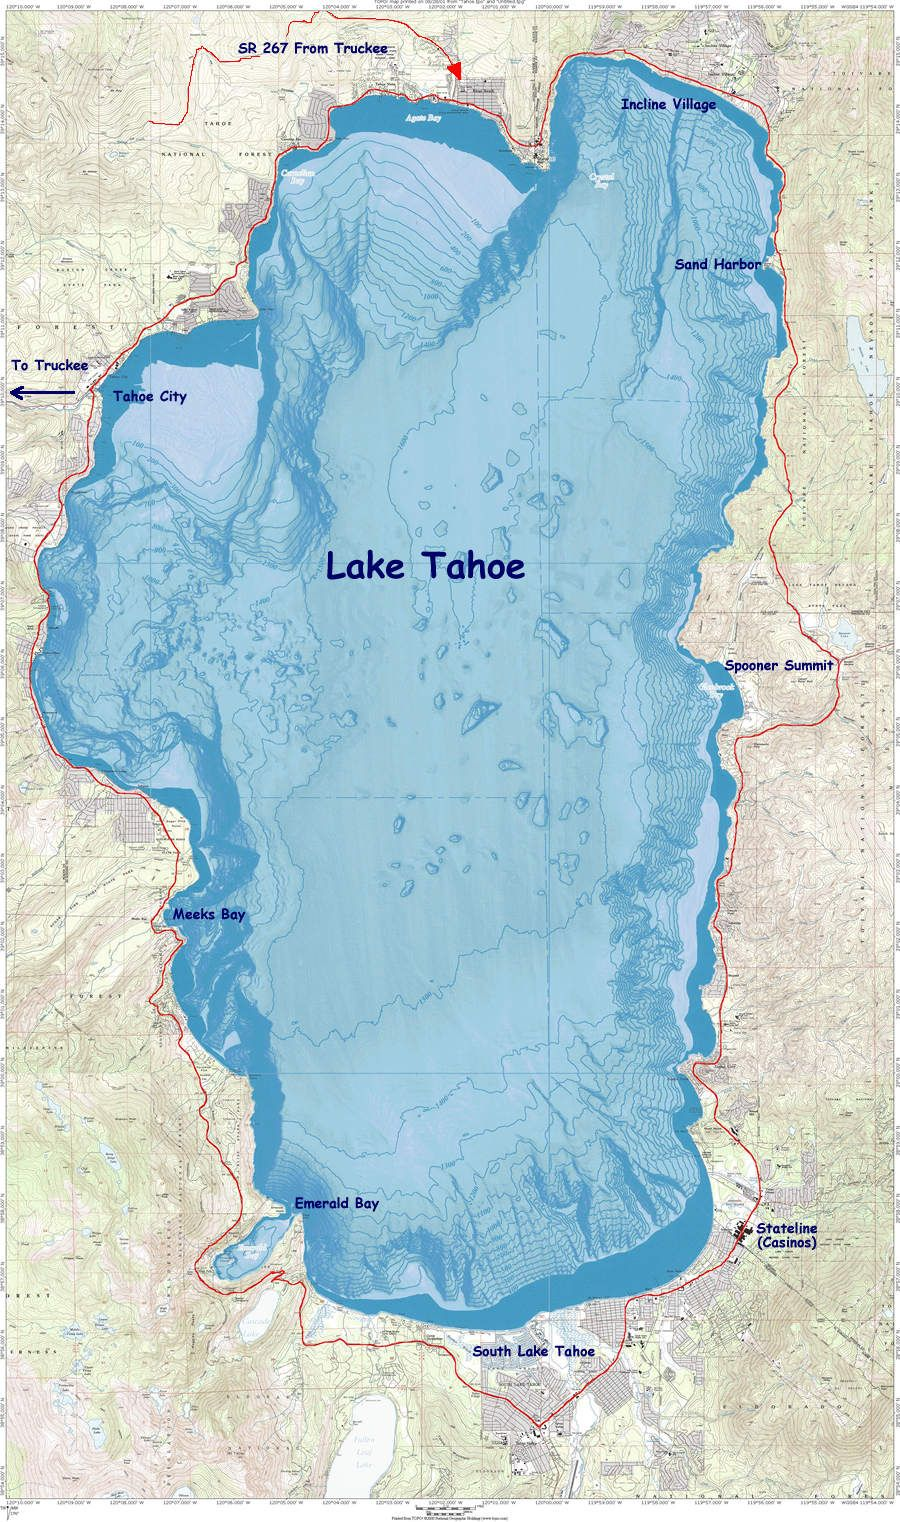 Lake Tahoe Map: Cycling route (in red), encircling an underwater